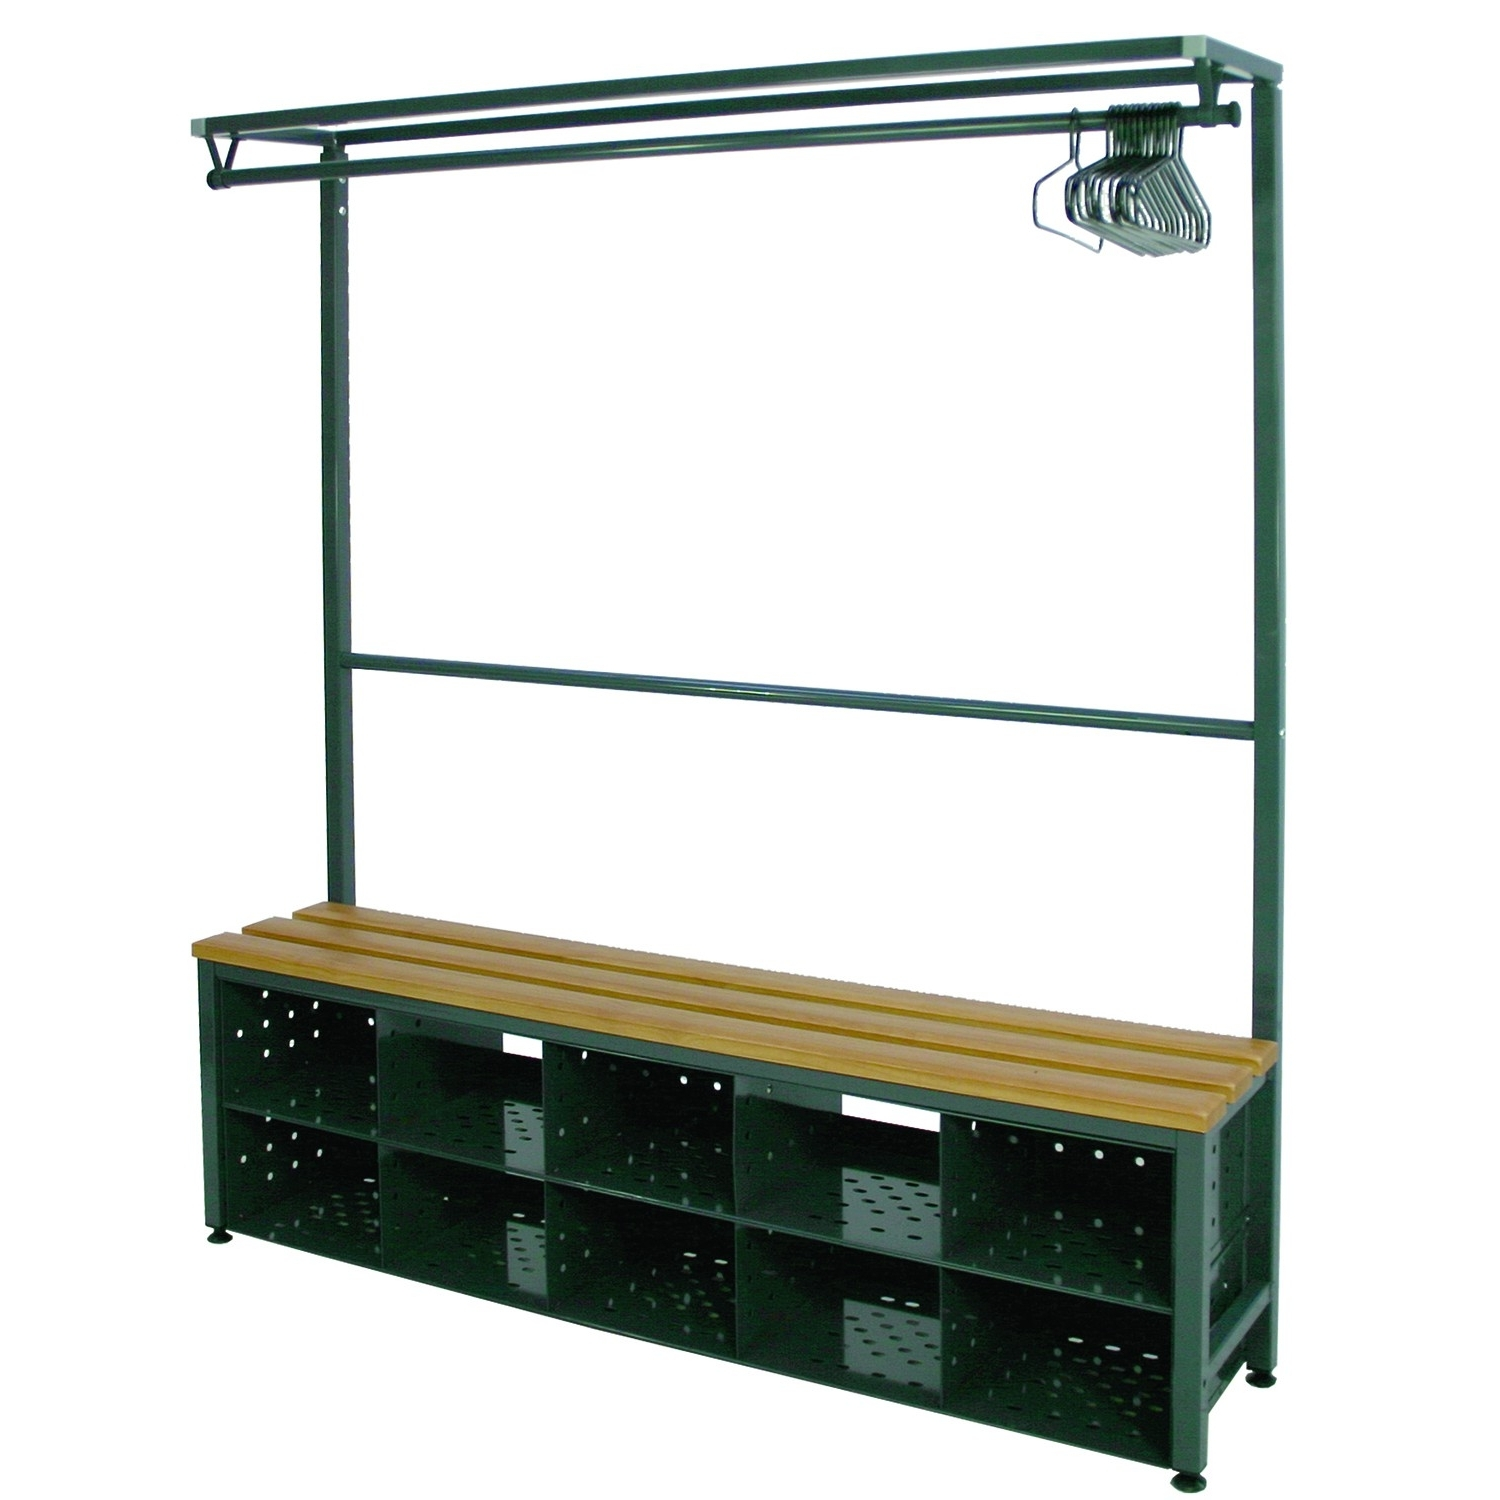 Hanging Rail : The Basic Wardrobe Heavy Duty Steel Clothes Rack With Regard To Current Double Hanging Rail For Wardrobes (View 11 of 15)